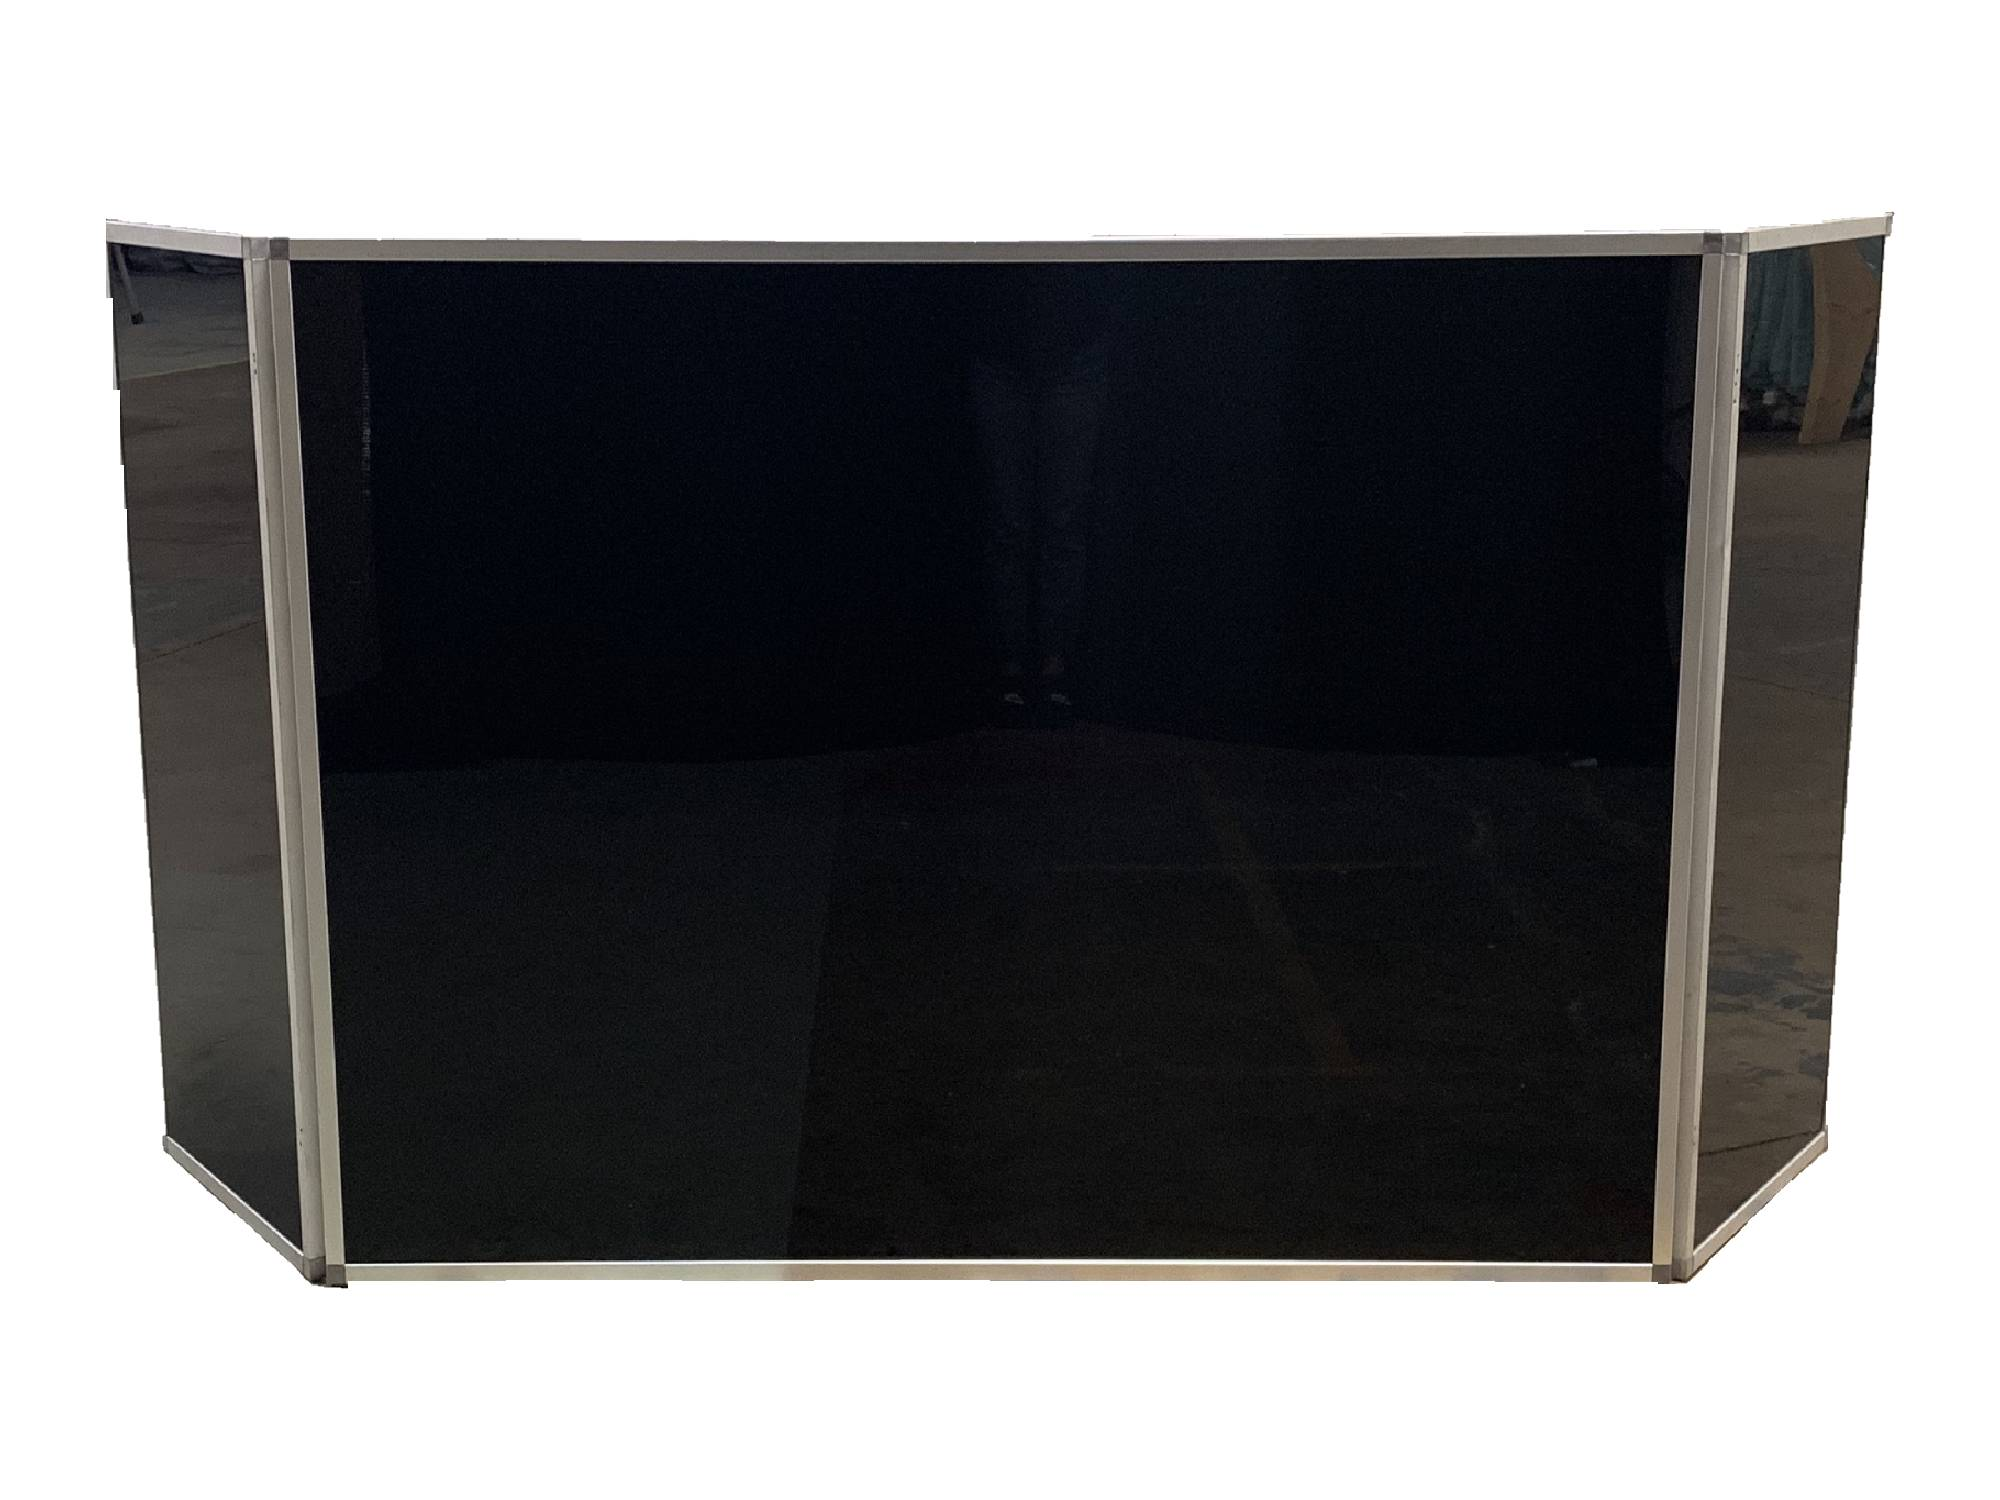 6FT-WIDE ACRYLIC TRI-FOLD DJ FAÇADE - BLACK